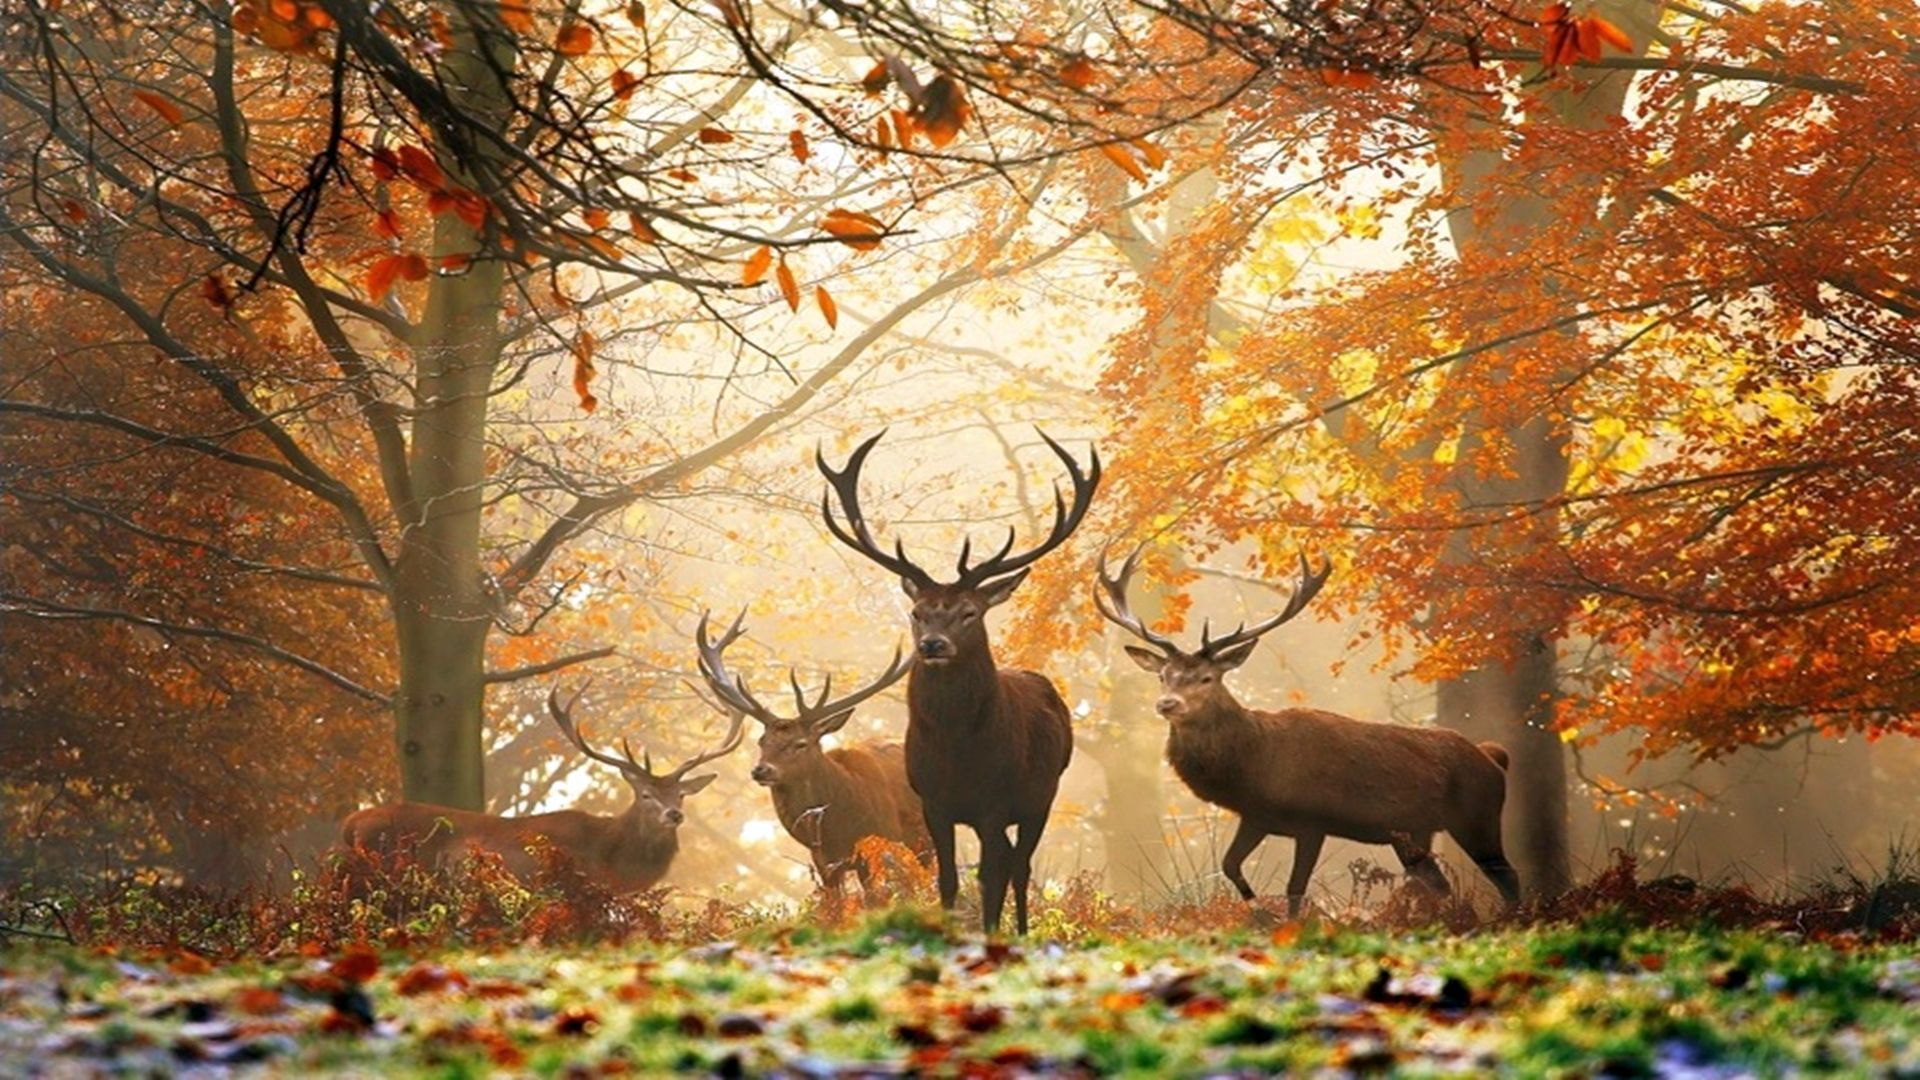 Deer Free Wallpaper and Background